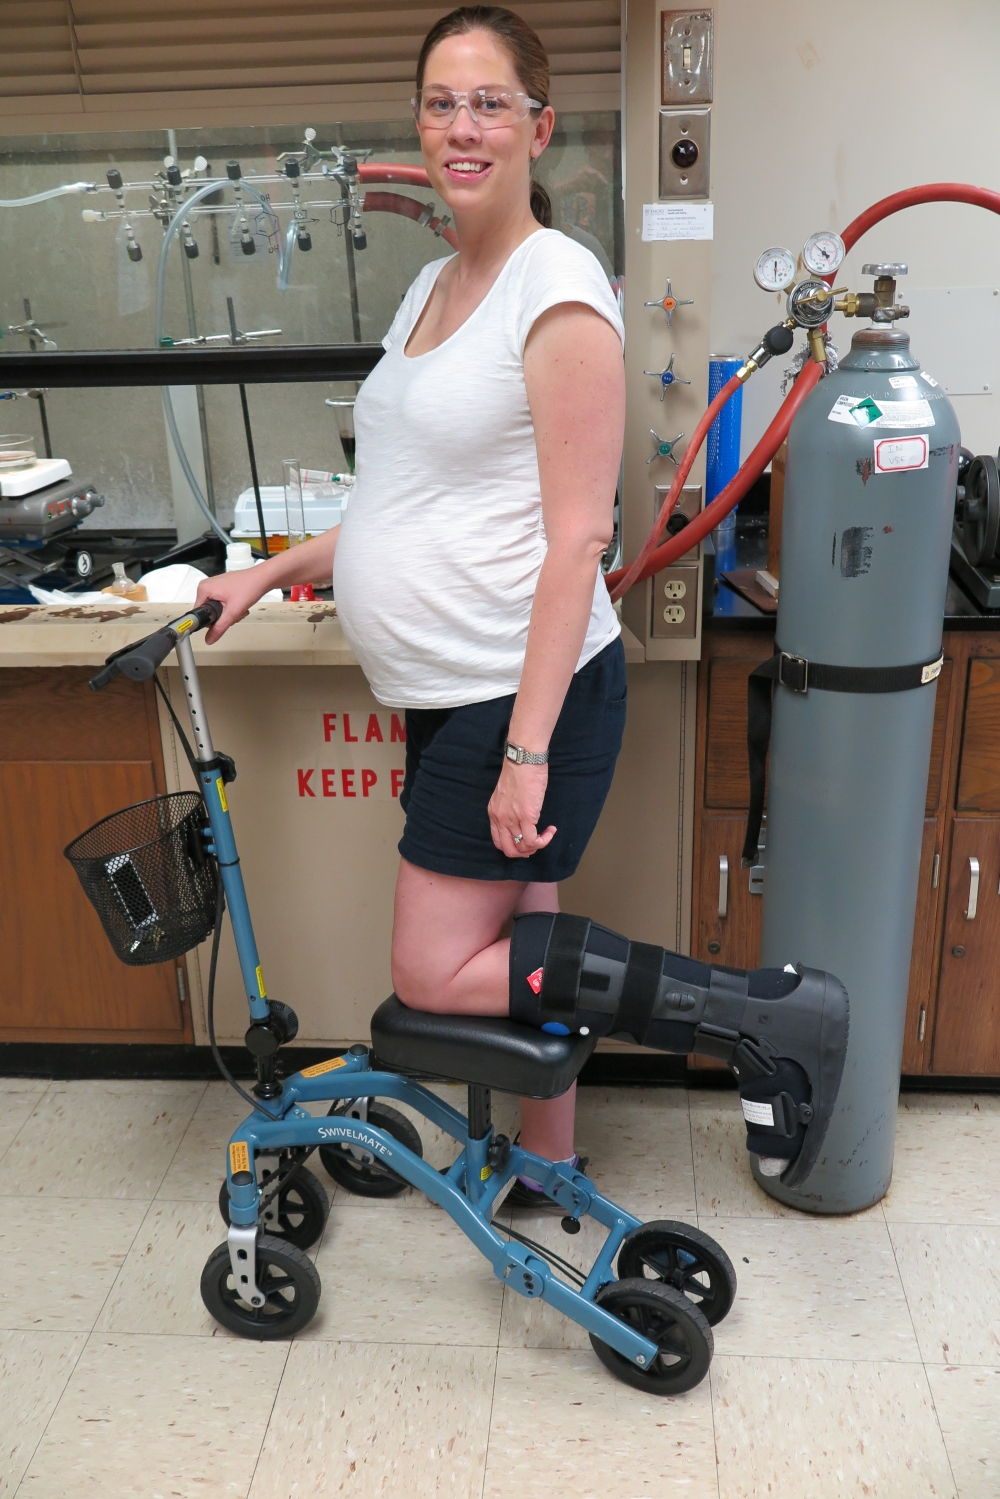 Annette on the Swivelmate Knee Walker from Atlanta Georgia July 2014